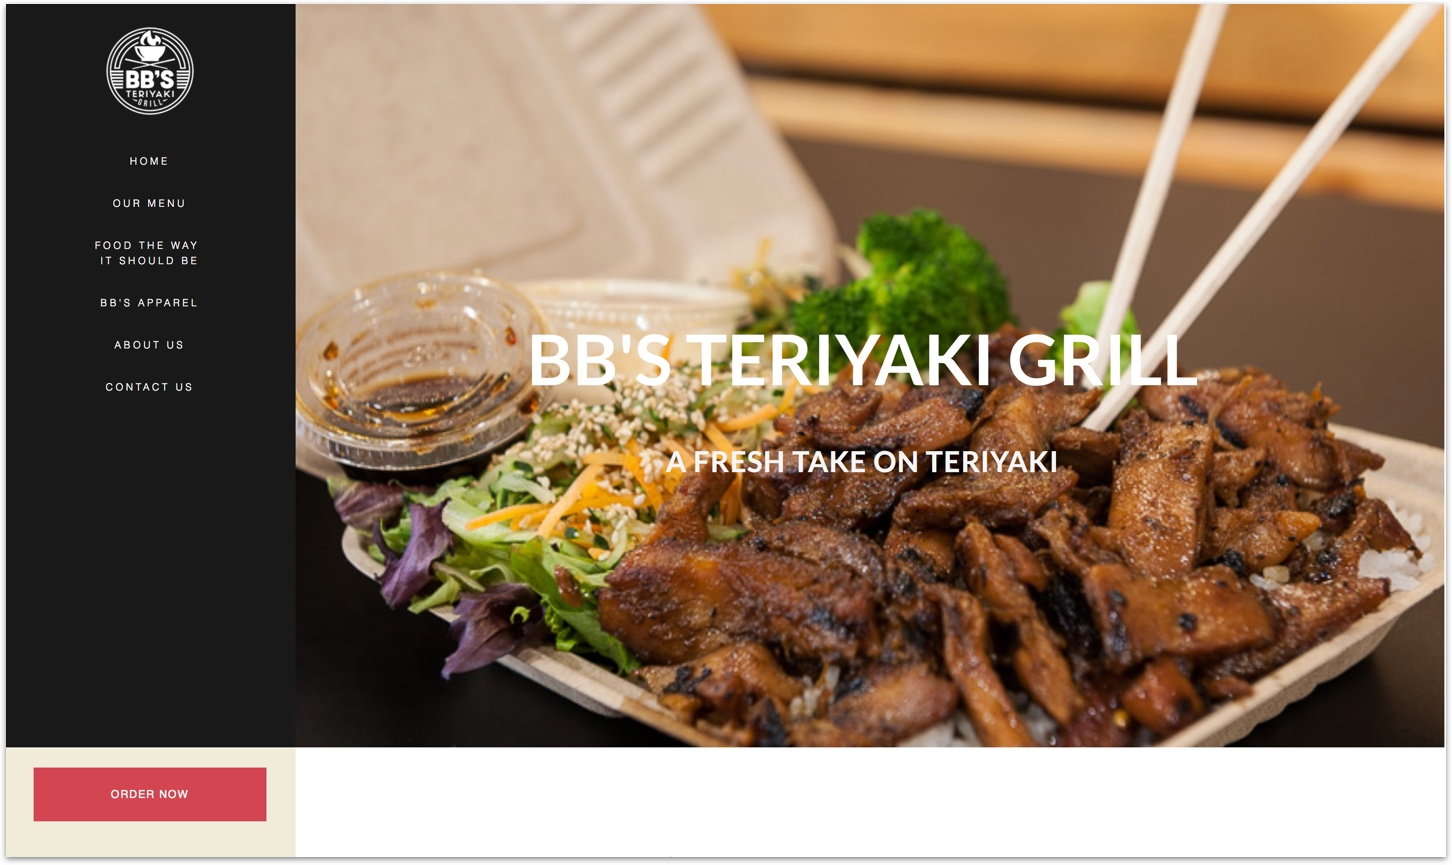 A Fresh Take on Teriyaki